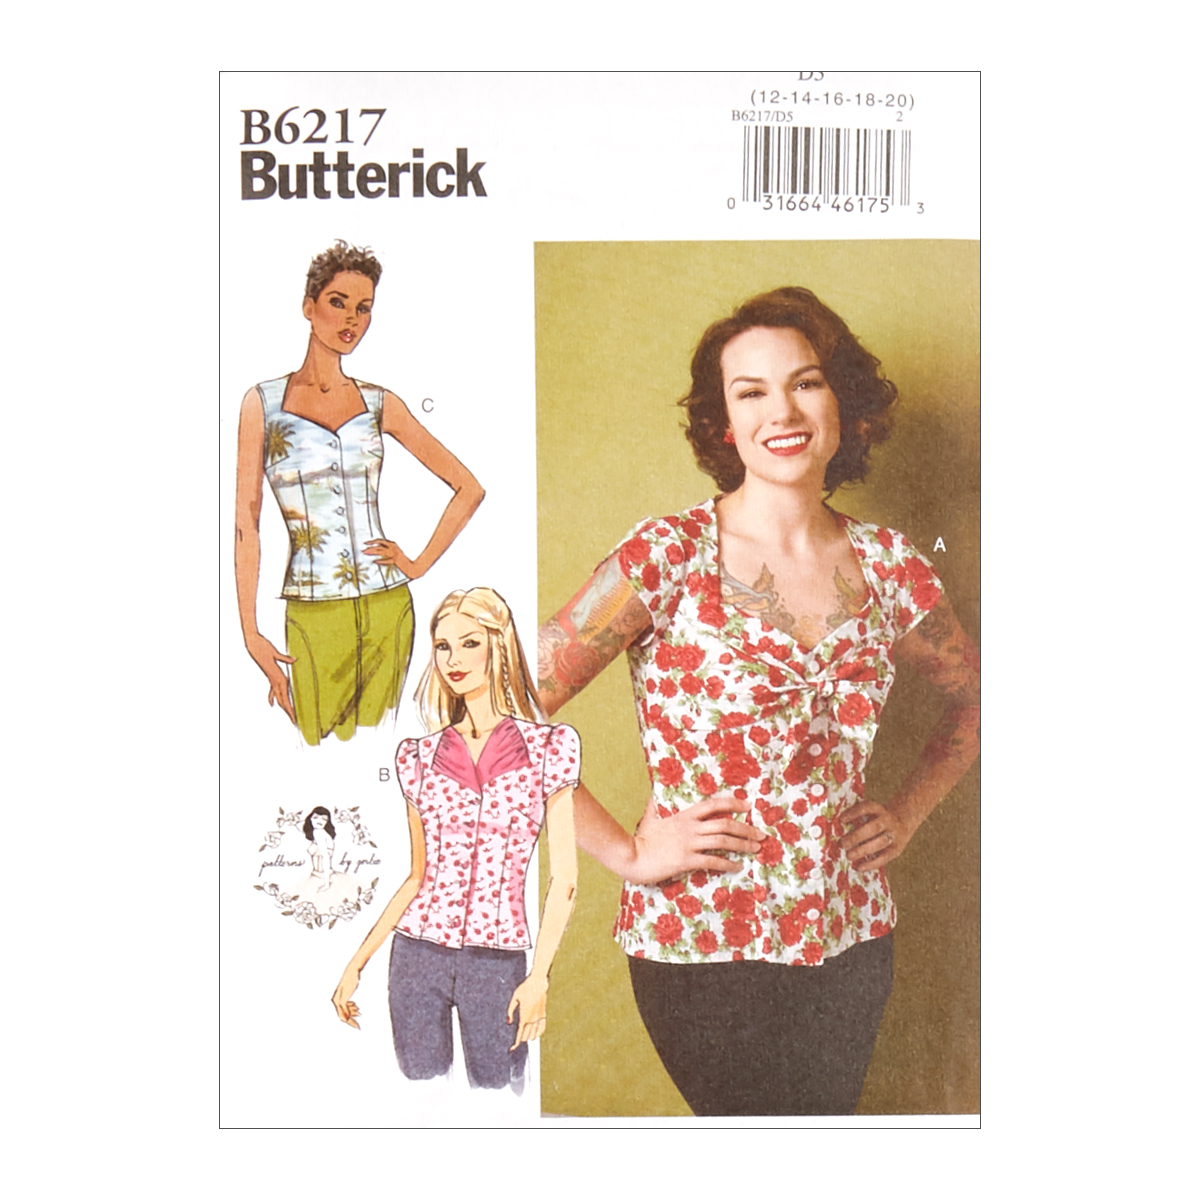 c160d422b82c 1950s Fabrics   Colors in Fashion Butterick B6217 Patterns by Gertie Misses  Blouse D5 Sizes 12